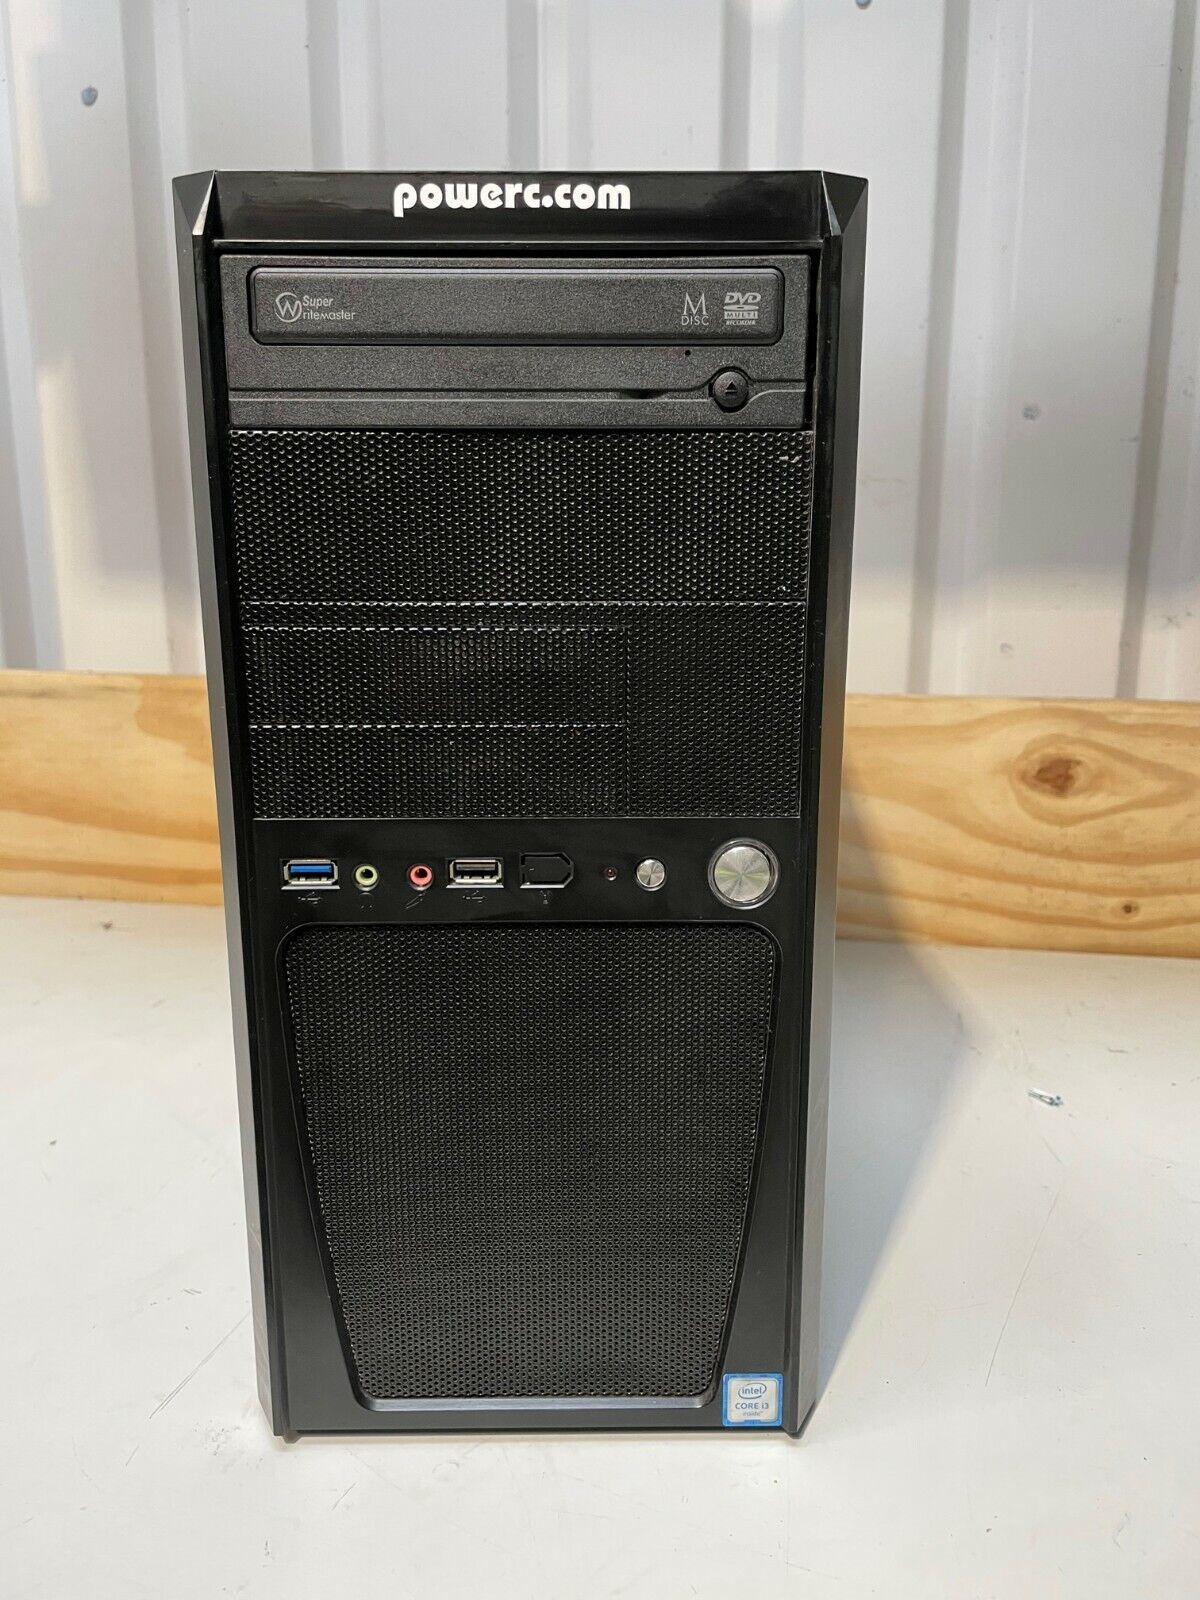 Computer Games - 6TH GENERATION TOWER COMPUTER i3 3.7GHZ SSD HDD 8GB DDR4 WINDOWS 10 PRO HDMI #1